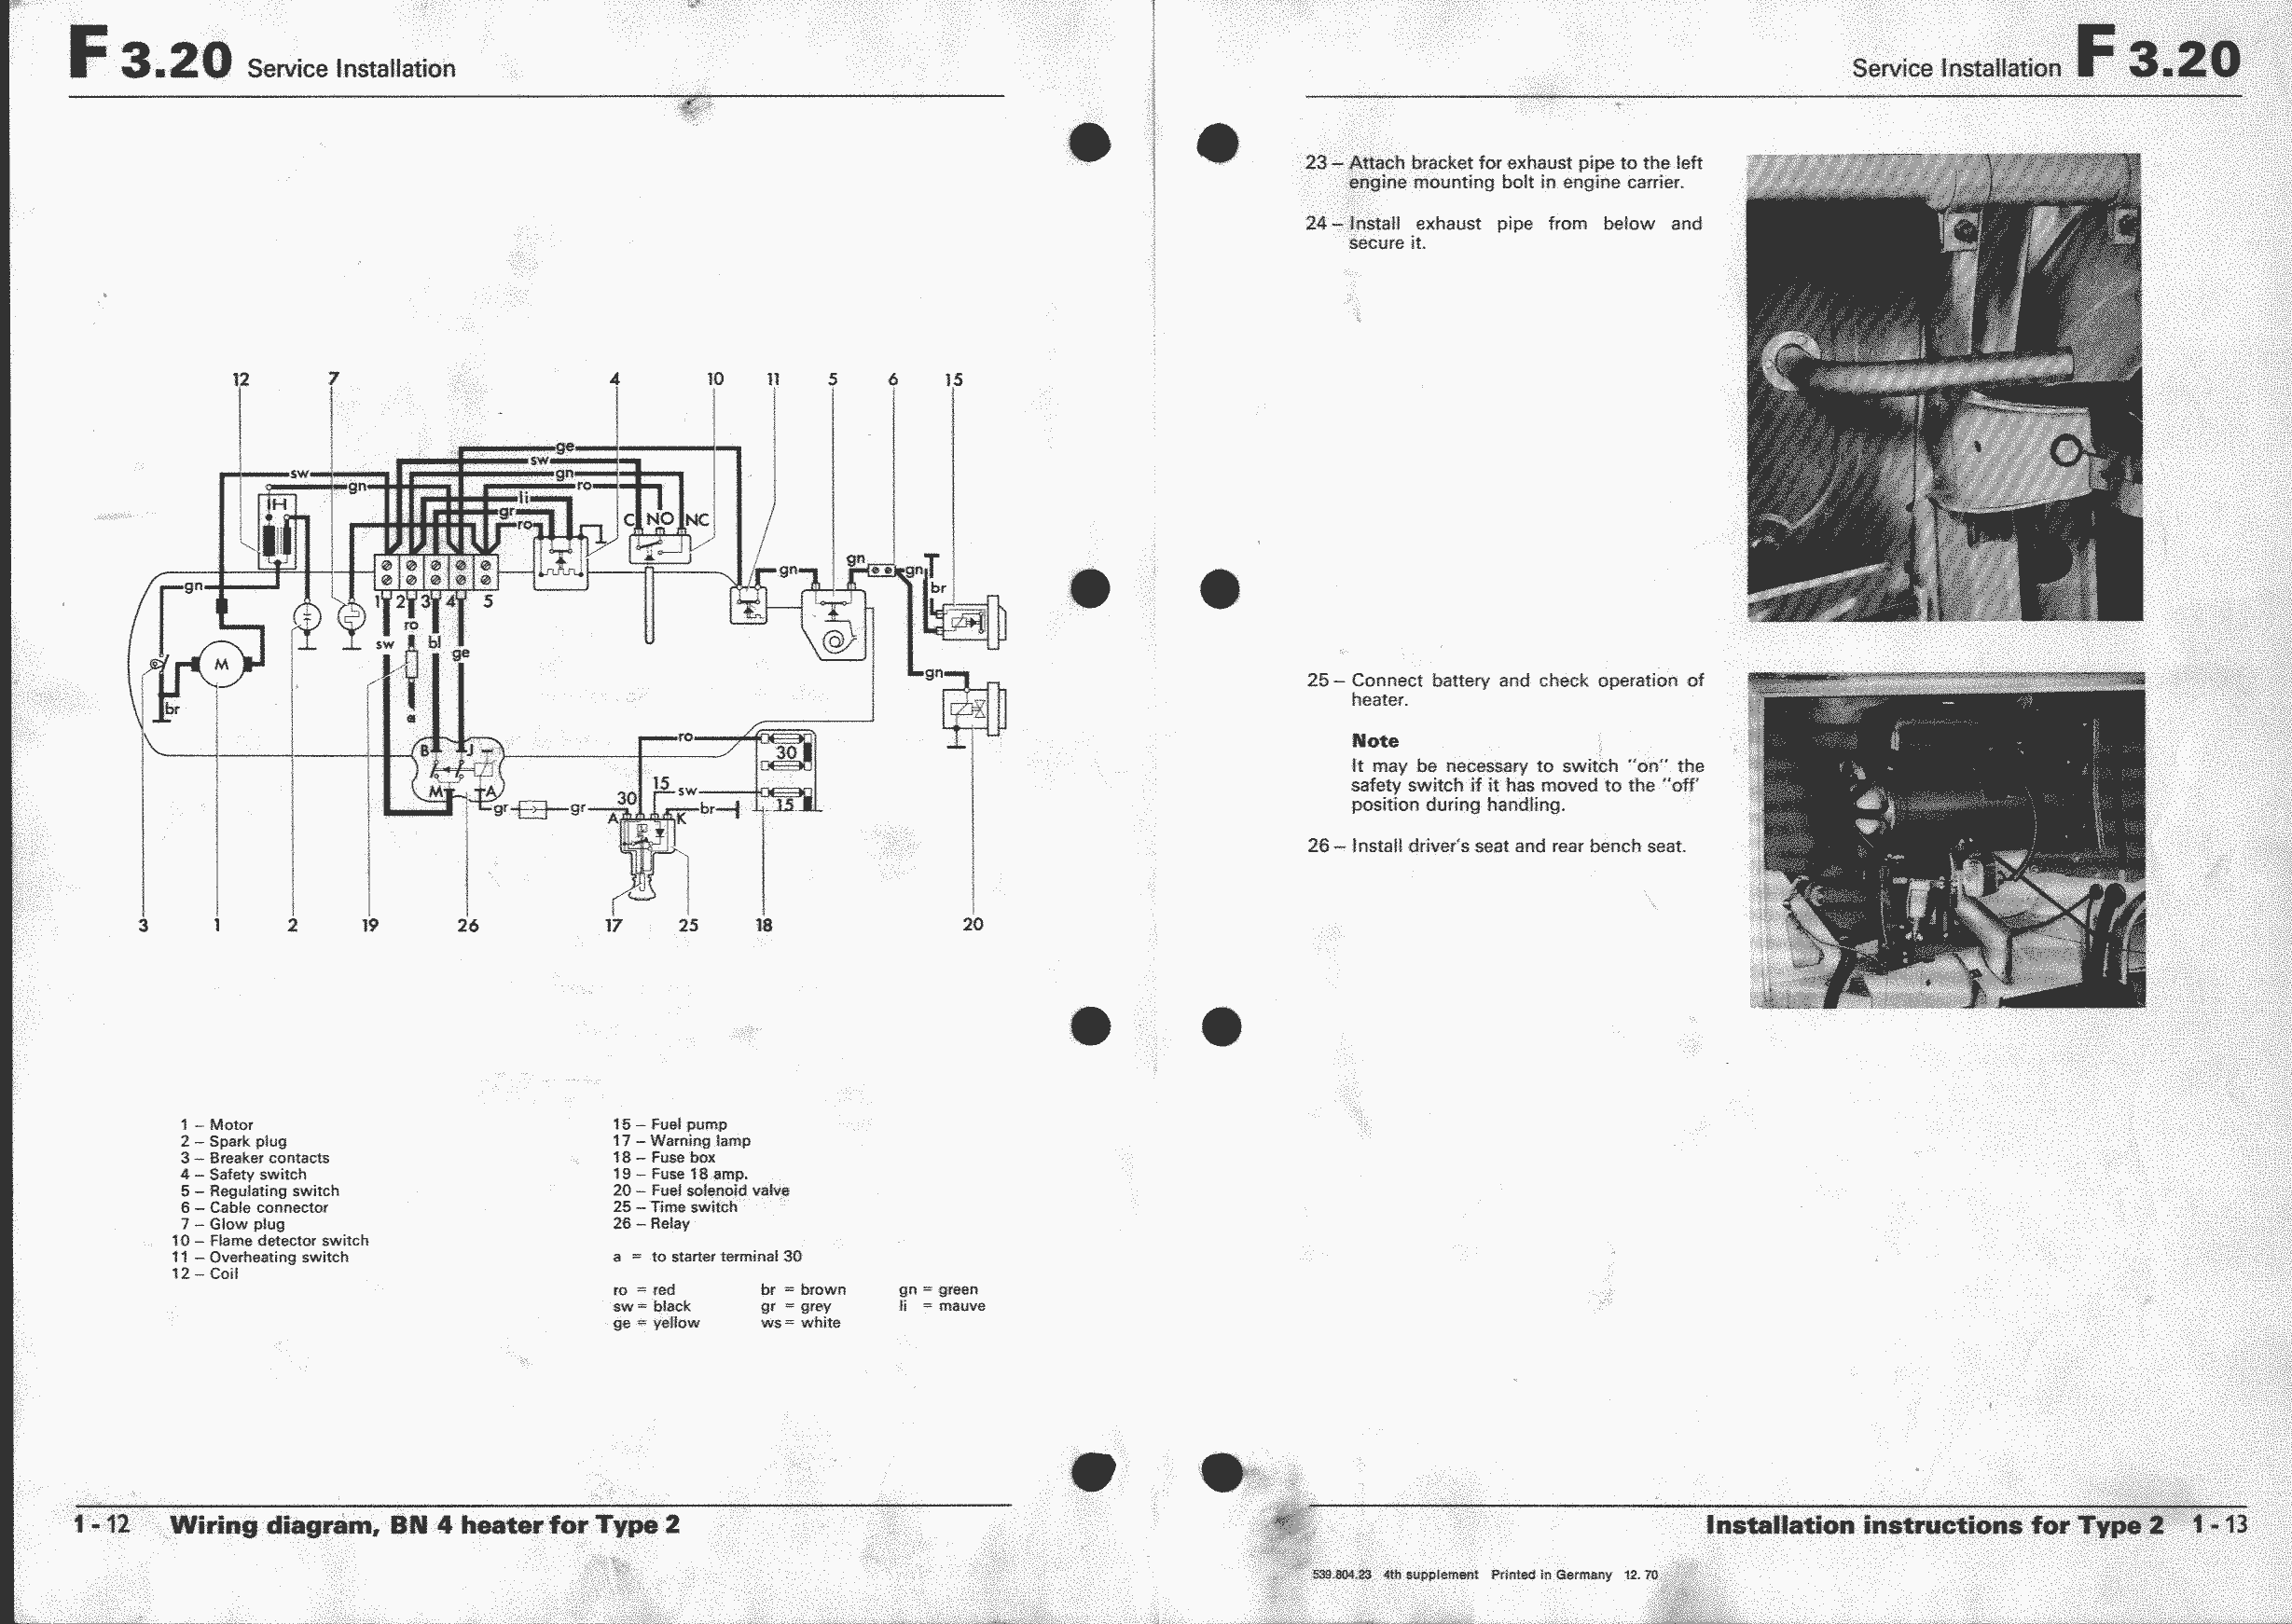 1973 Vw Super Beetle Wiring Diagram For Rear Window Defroster Fuse Box Obsolete Air Cooled Documentation Project Workshop Manual